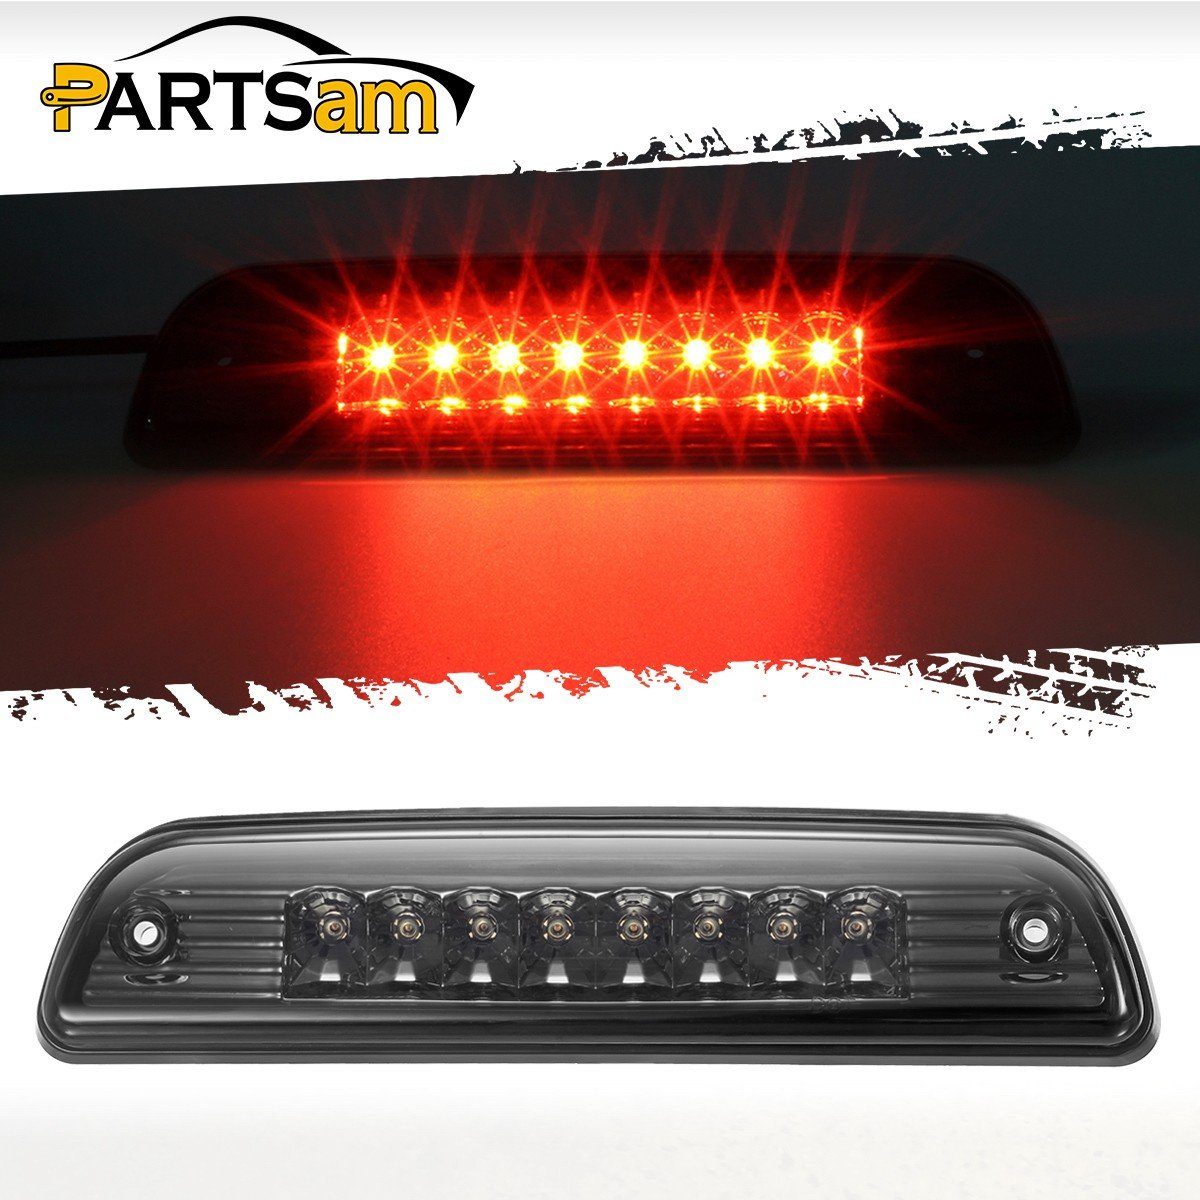 Red Center Hight Mount Stop Light Third 3rd Brake//Reverse LED Lights Lamp Replacement for 1995-2016 Toyota Tacoma Cargo Lights